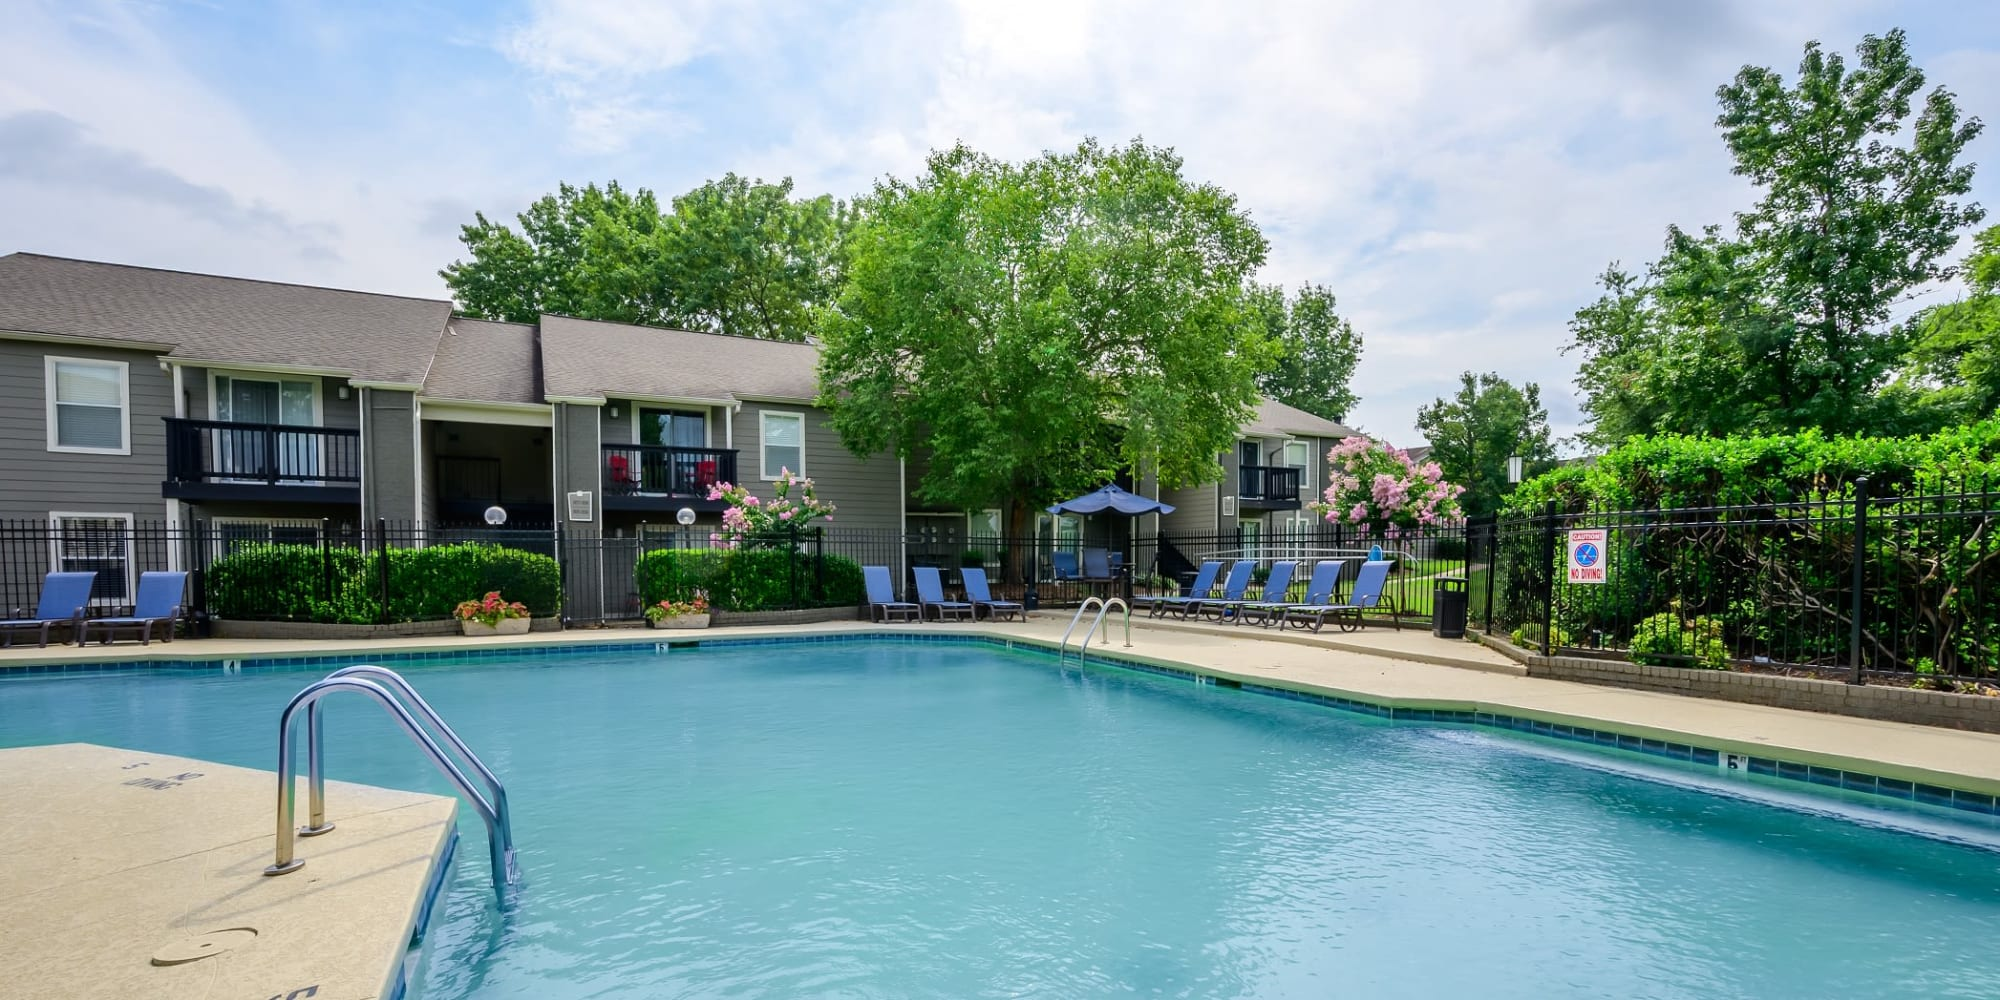 Apartments at The Hamilton in Hendersonville, Tennessee